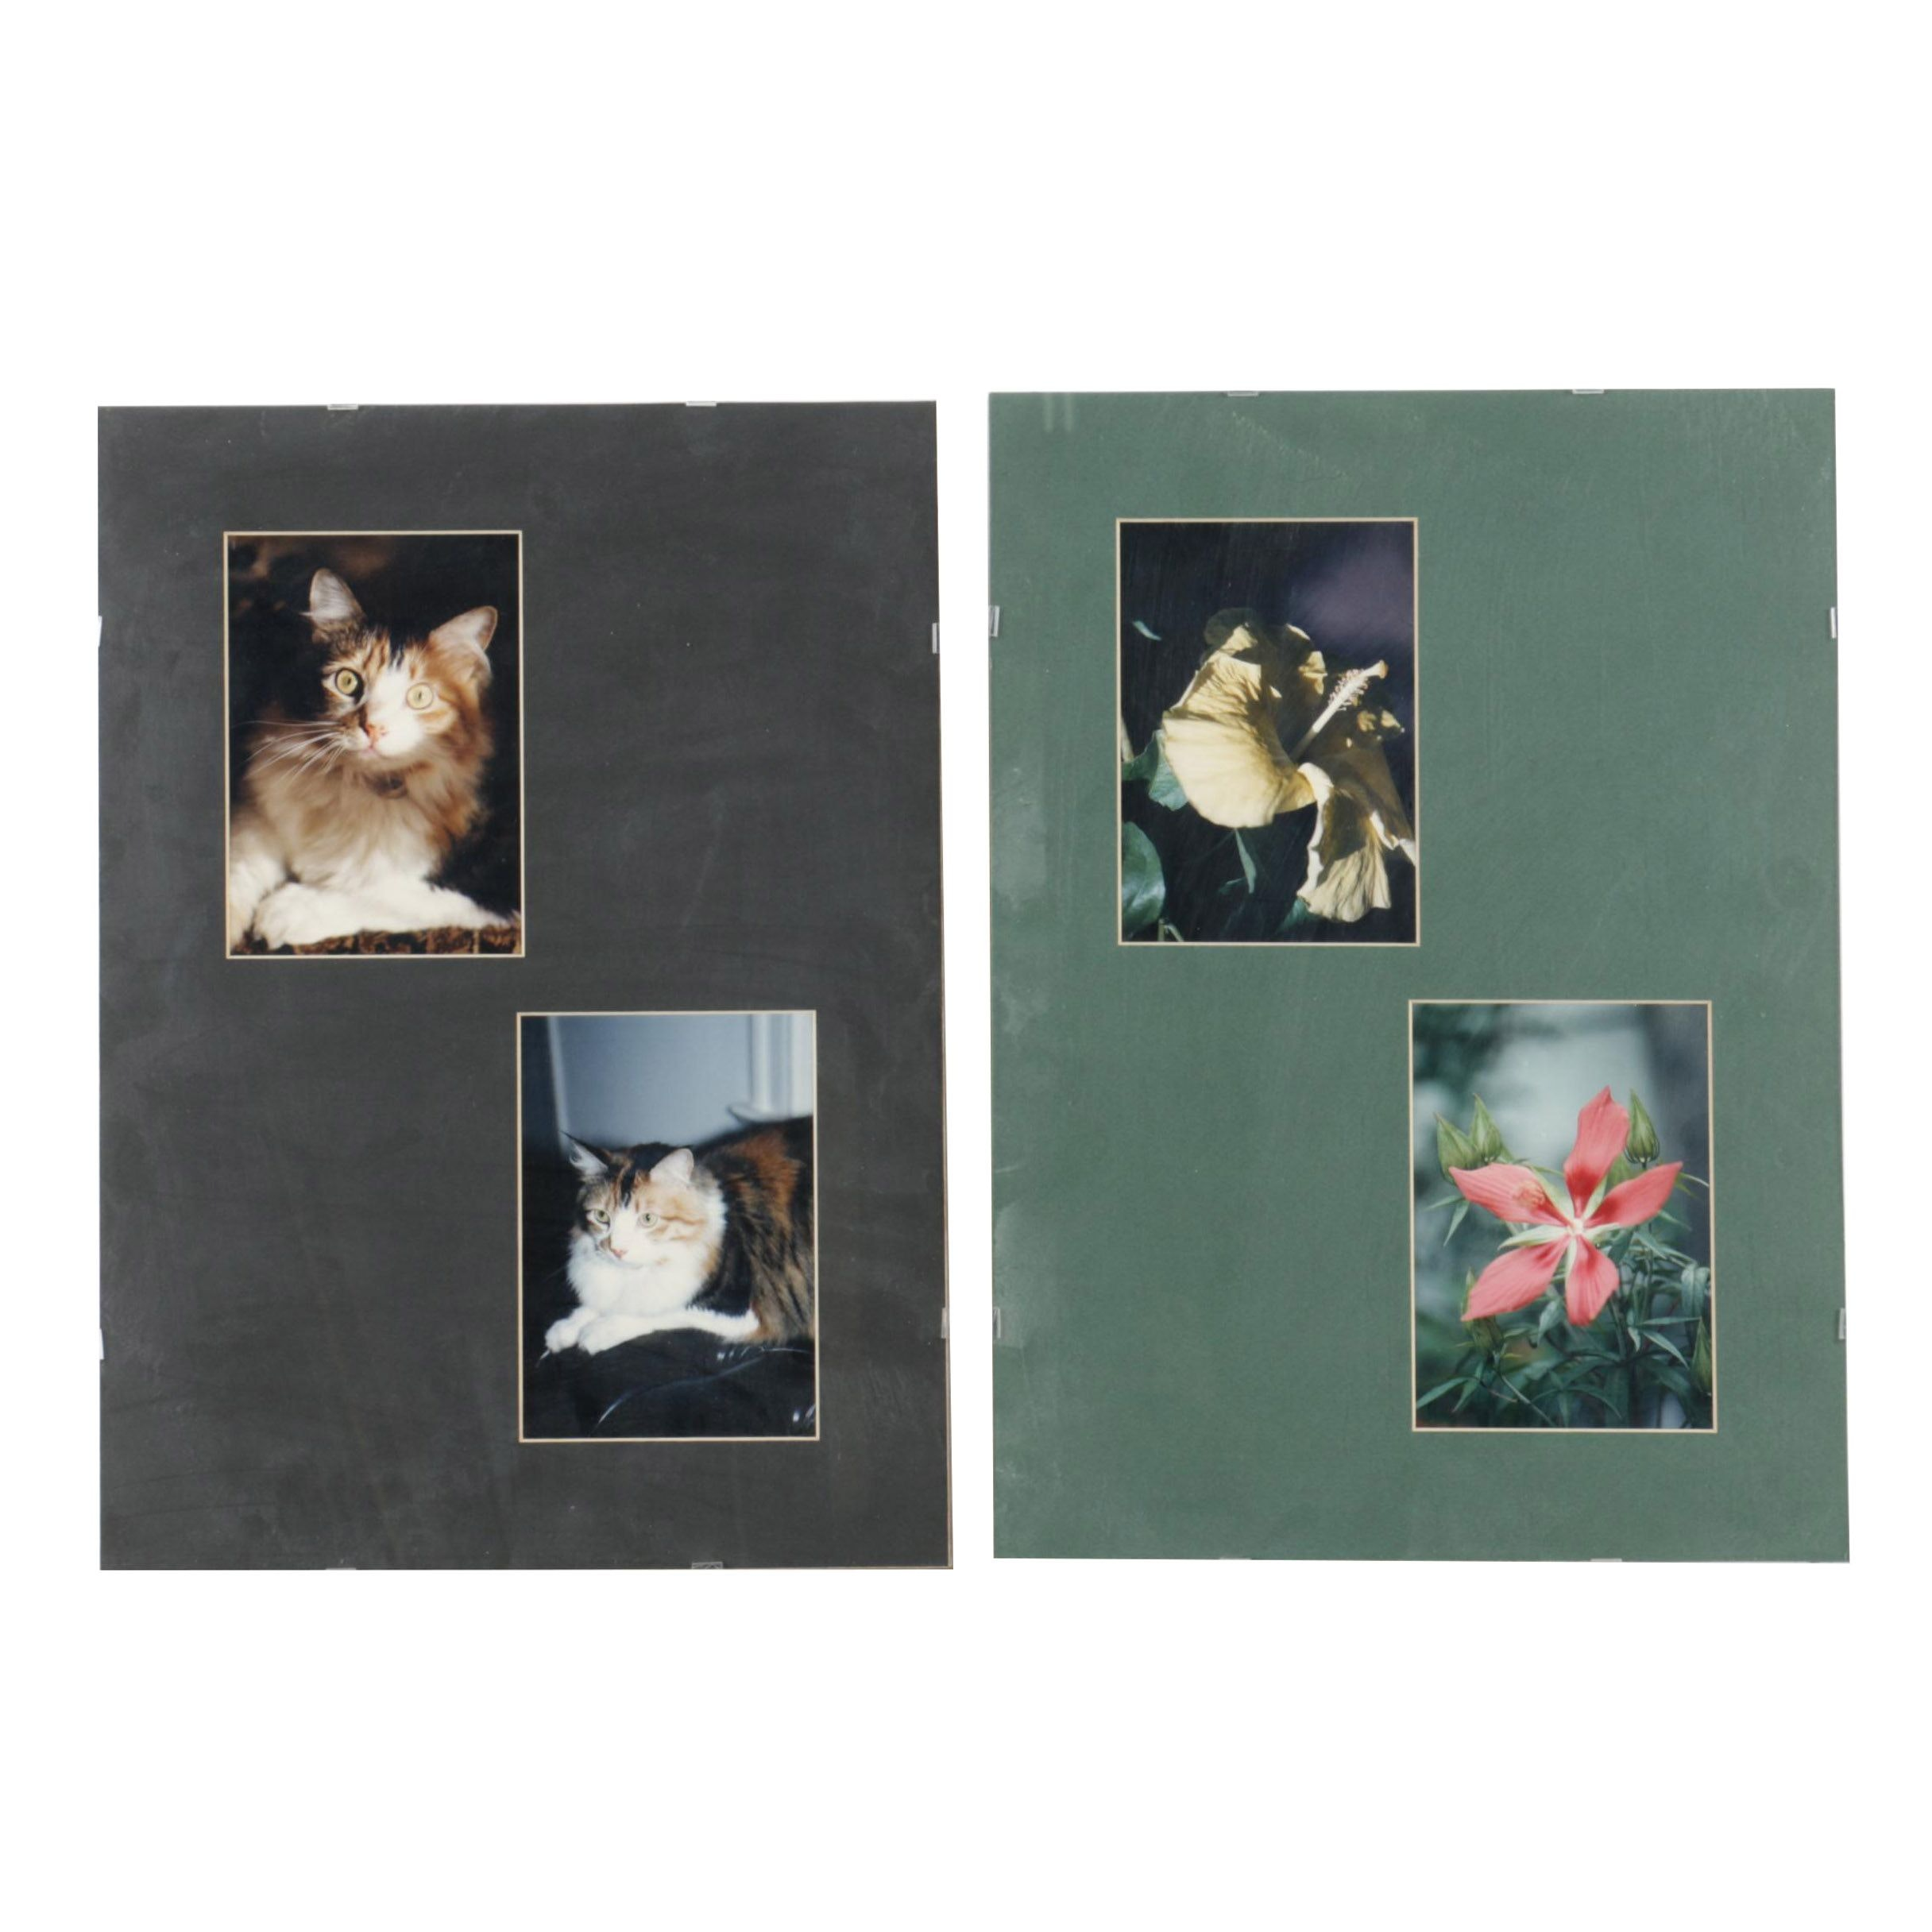 Color Photographs of Cats and Flowers